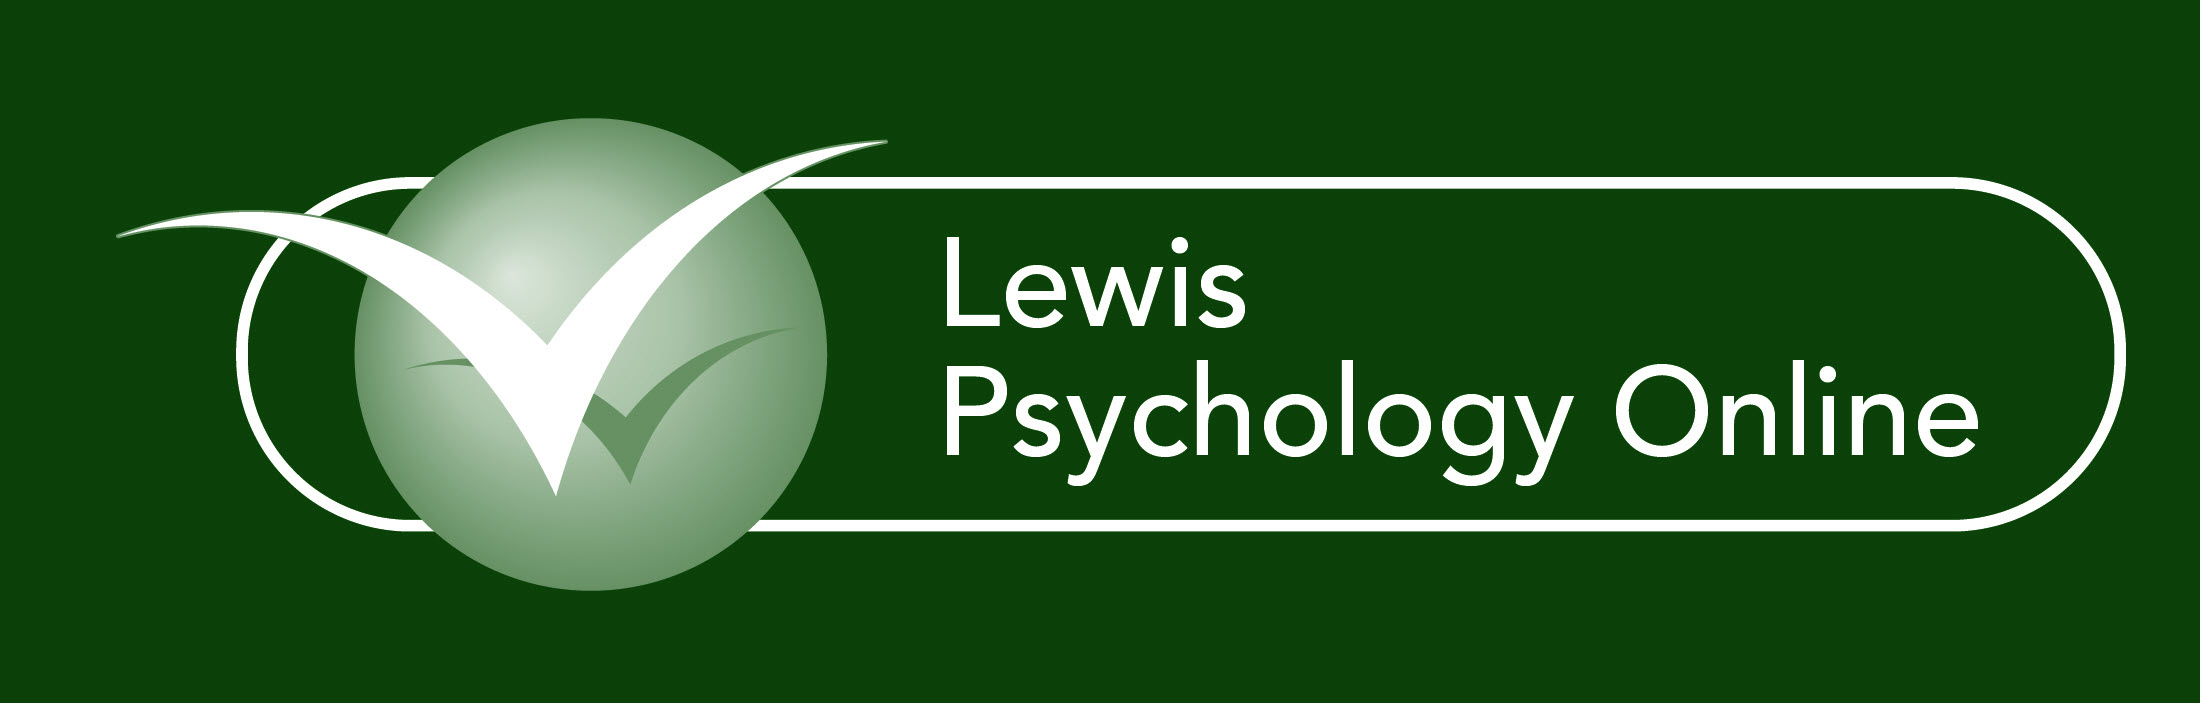 Lewis Psychology Online Therapy